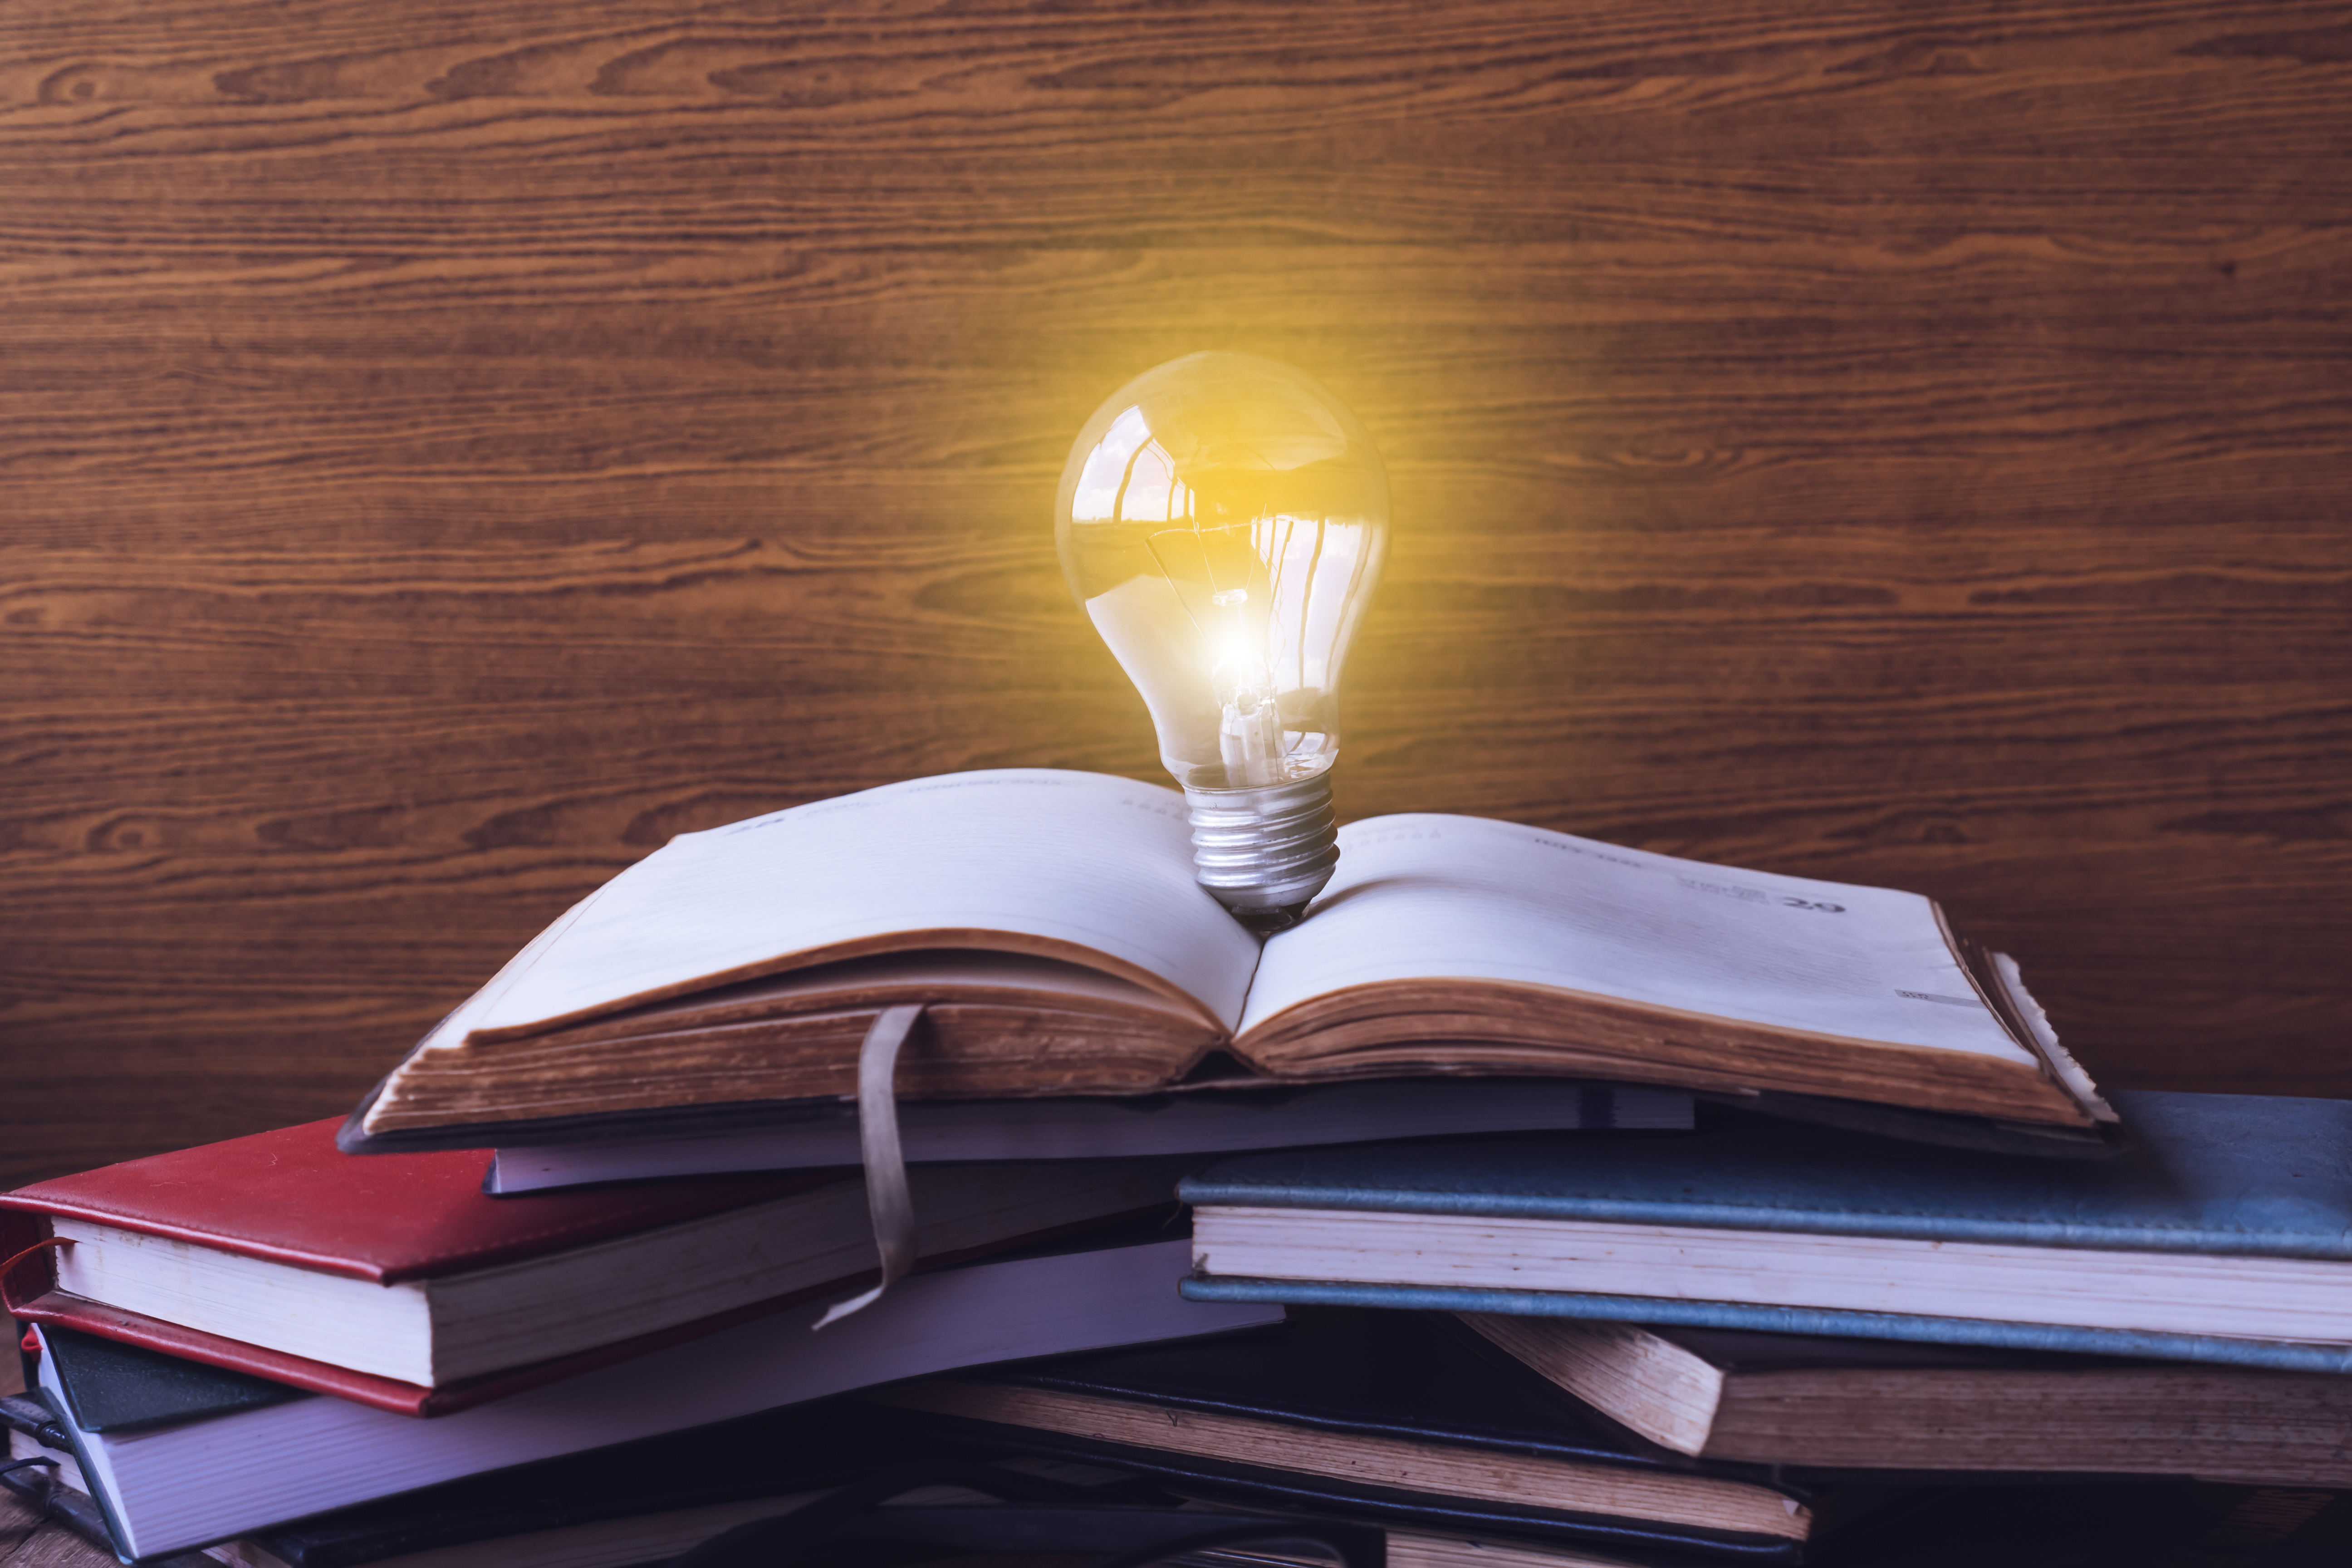 Open book with light bulb and hardback books on wood wall background.